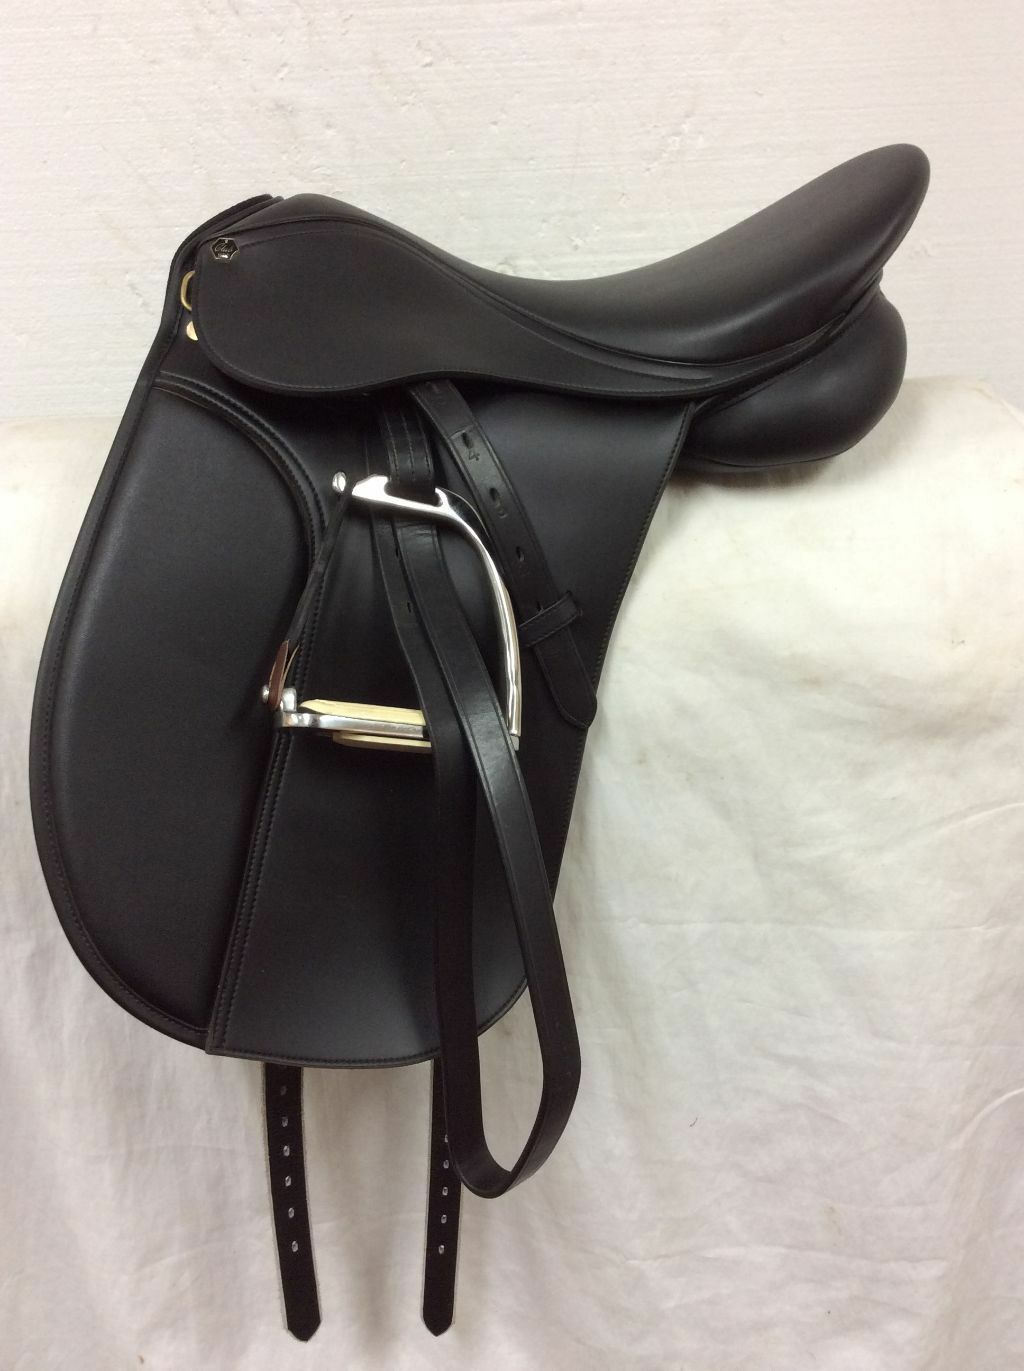 HDR Synthetic English Dressage Saddle 17.5  Used  Wide Tree  discount store